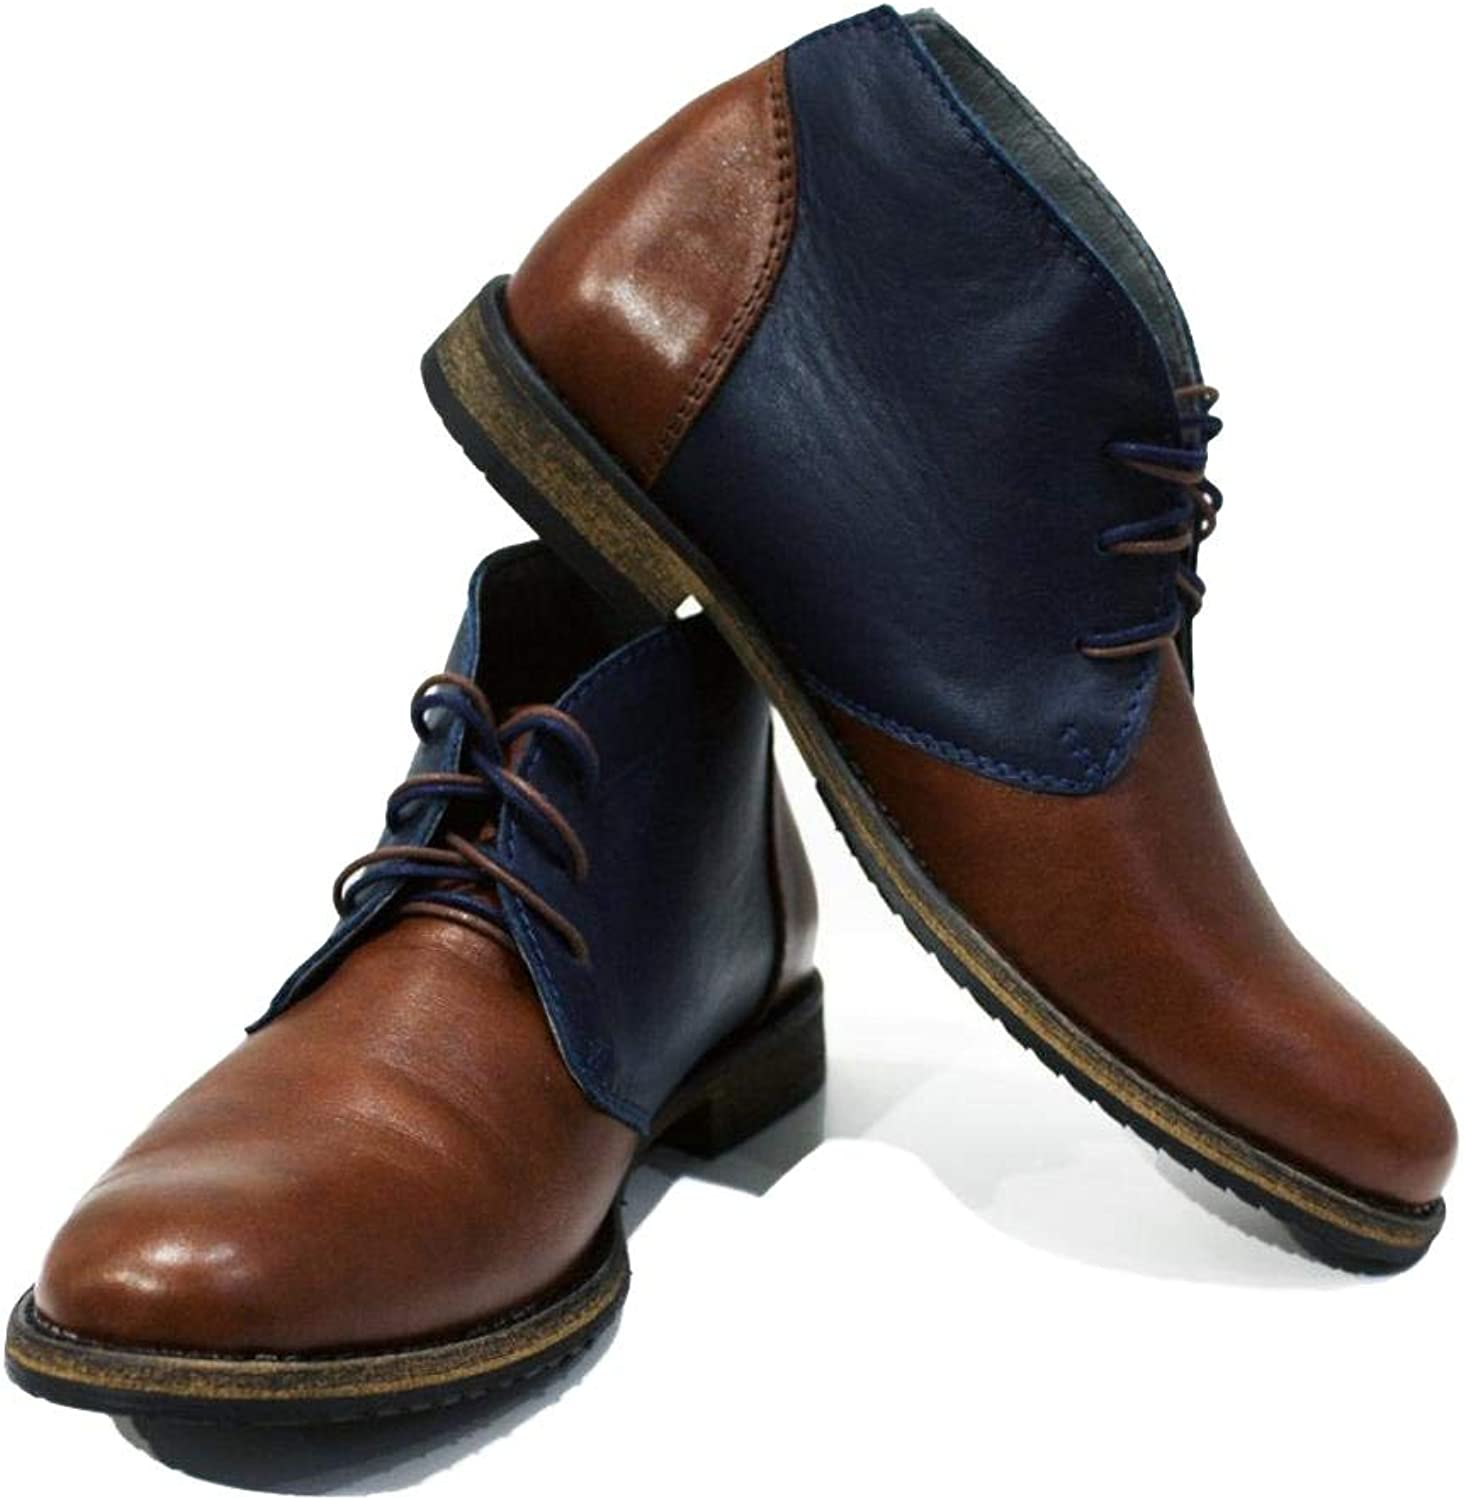 Peppeshoes Modello Caivano - Handmade Italian Leather Mens color Brown Ankle Chukka Boots - Cowhide Smooth Leather - Lace-Up